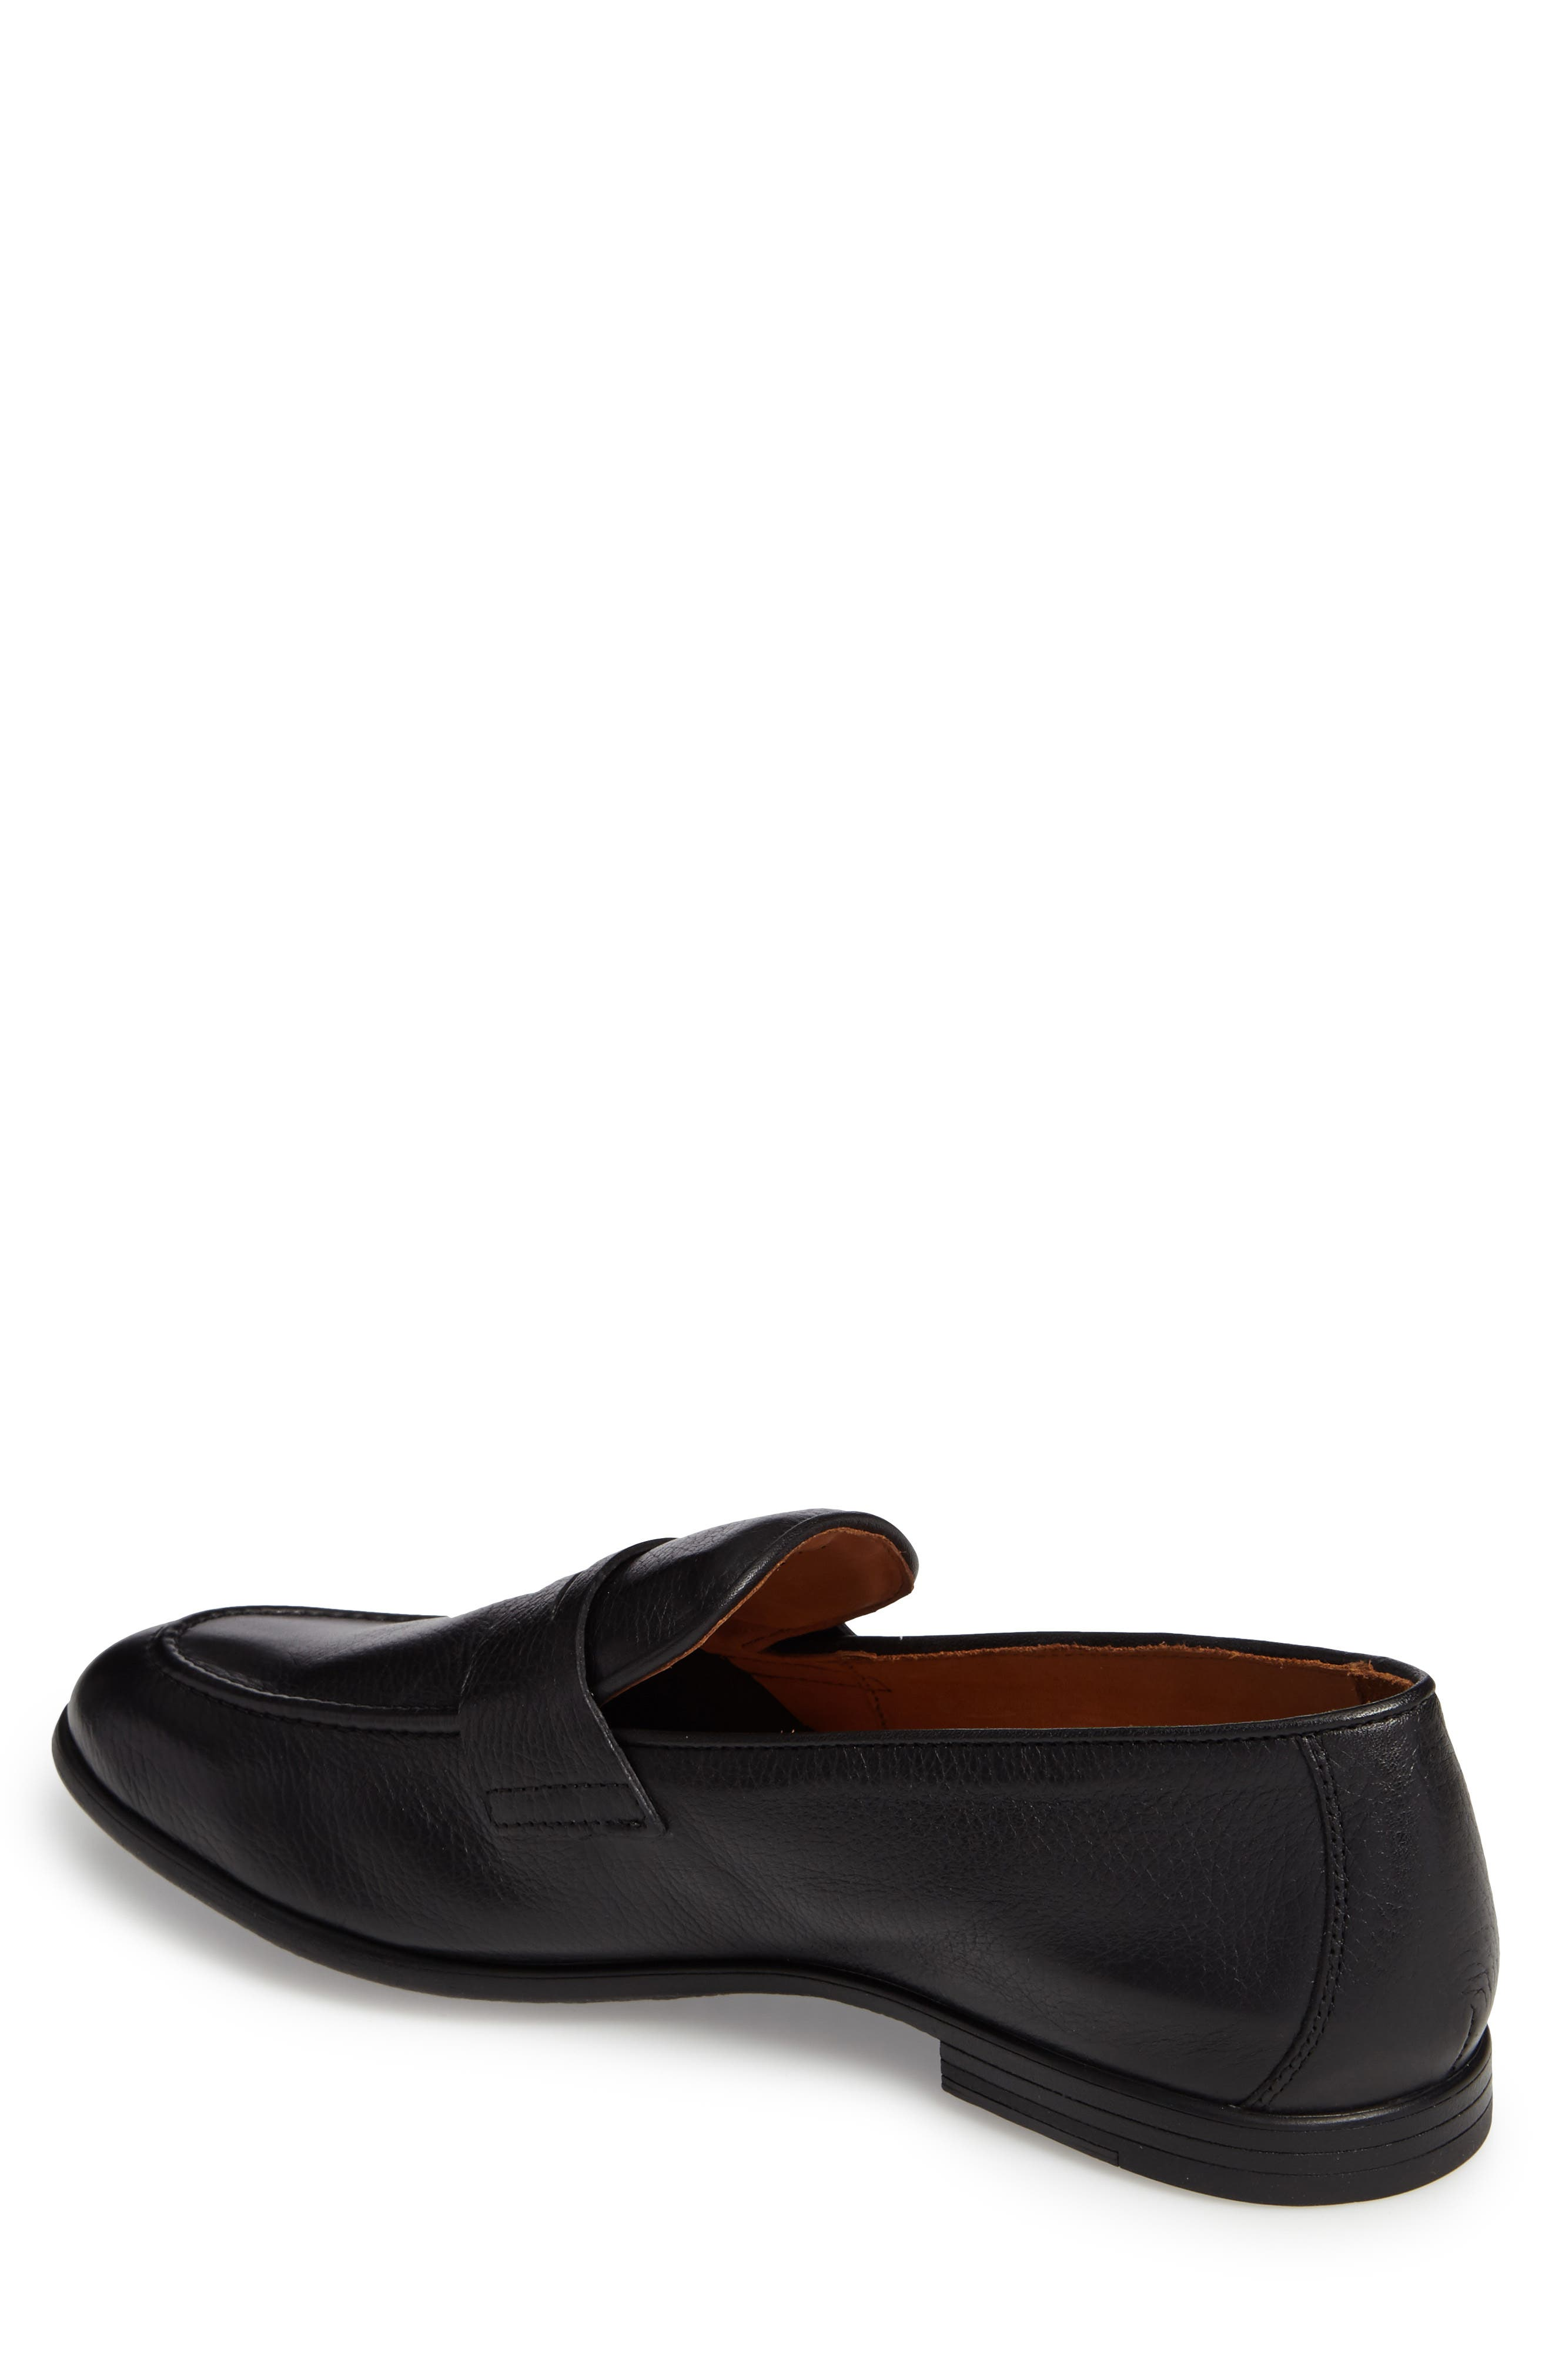 Dillon Penny Loafer,                             Alternate thumbnail 2, color,                             001